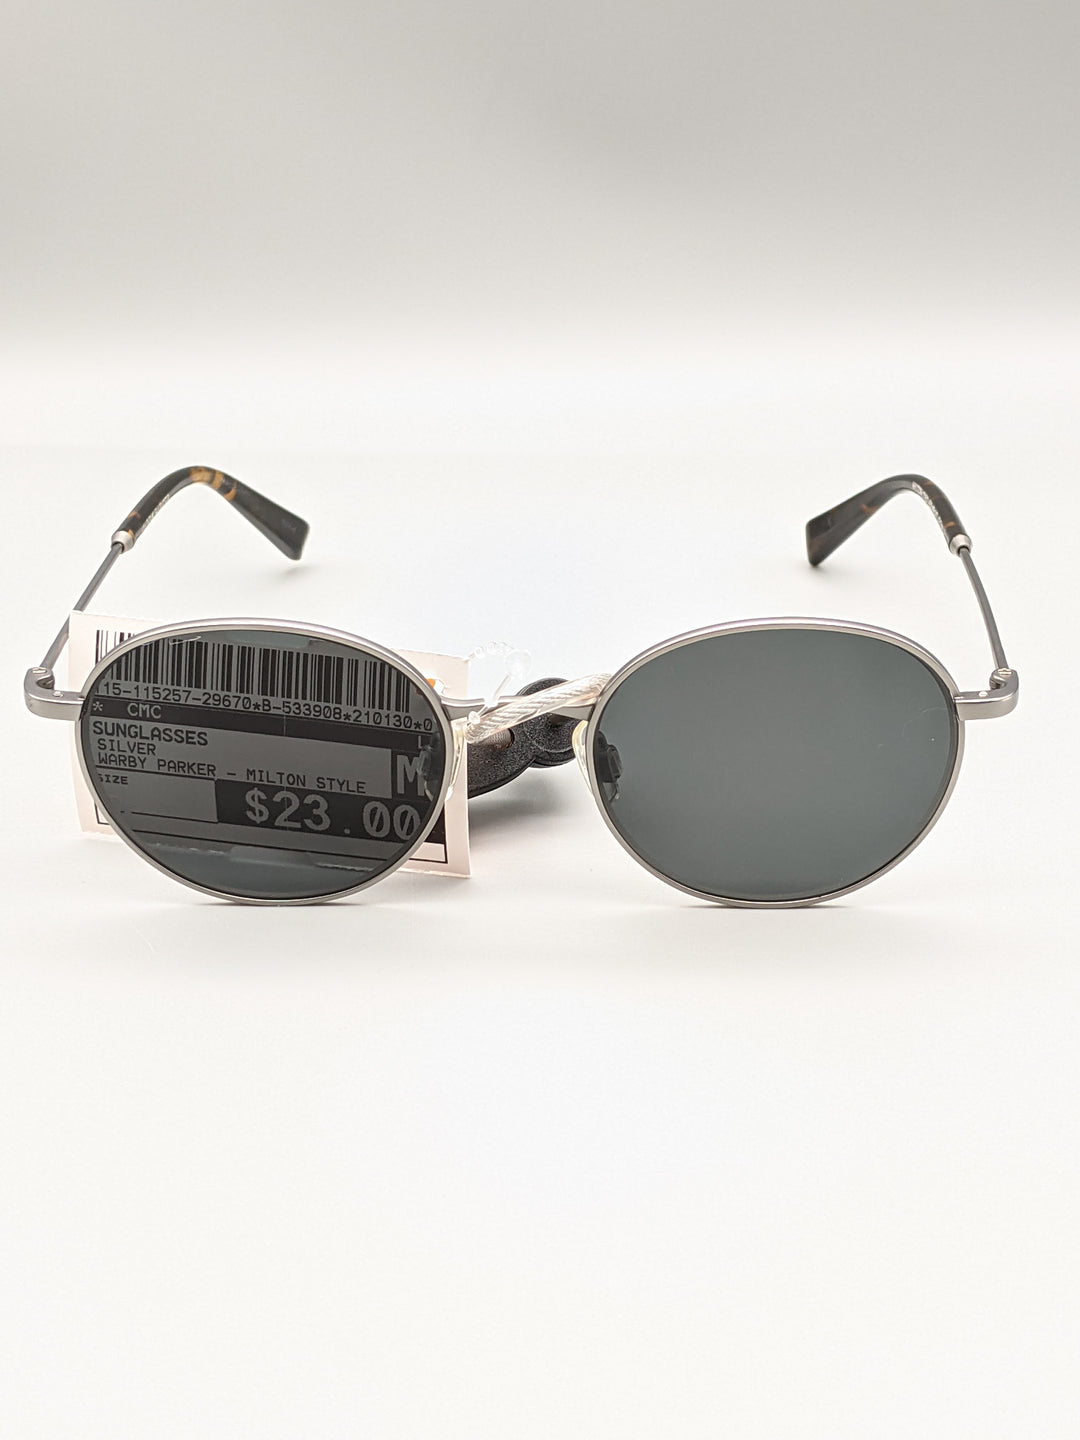 Primary Photo - BRAND:   CMC <BR>STYLE: SUNGLASSES <BR>COLOR: SILVER <BR>OTHER INFO: WARBY PARKER - MILTON STYLE <BR>SKU: 115-115257-29670<BR>SOME VERY SMALL SCRATCHES ON LENSE